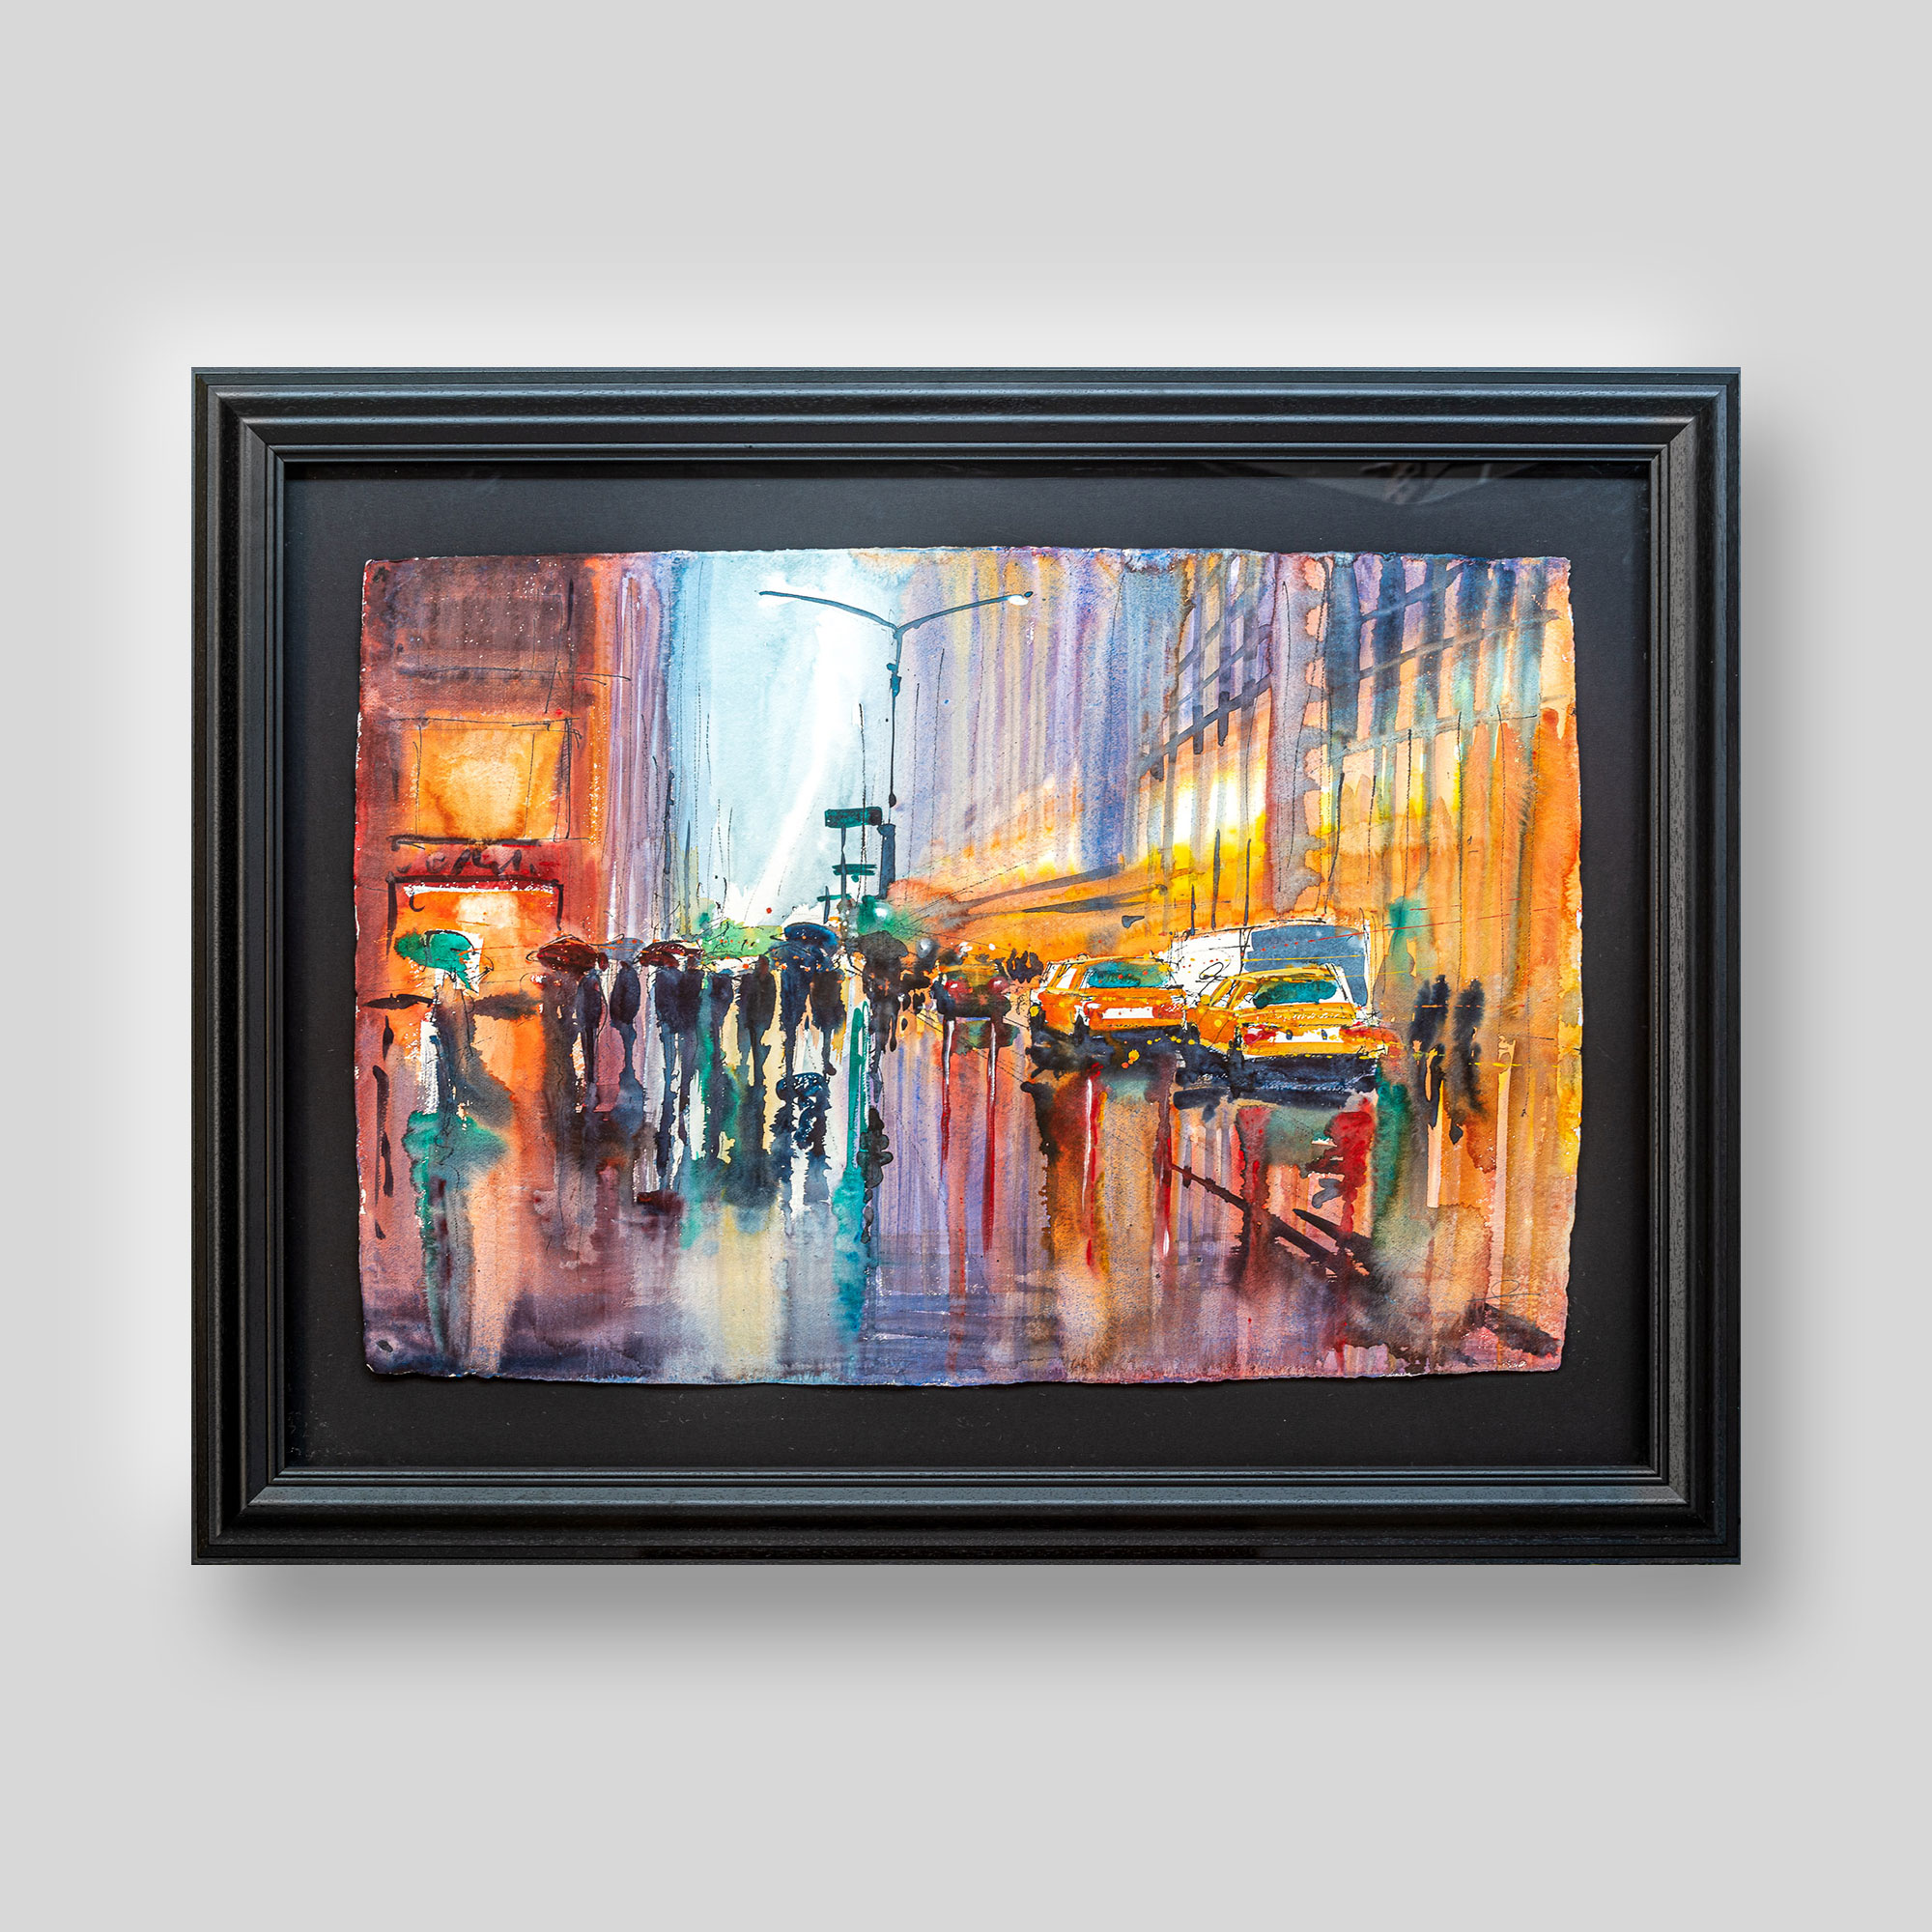 Blurred Lines - Original New York Taxi Painting by UK Cityscape Artist Paul Kenton, from the Watercolour Collection